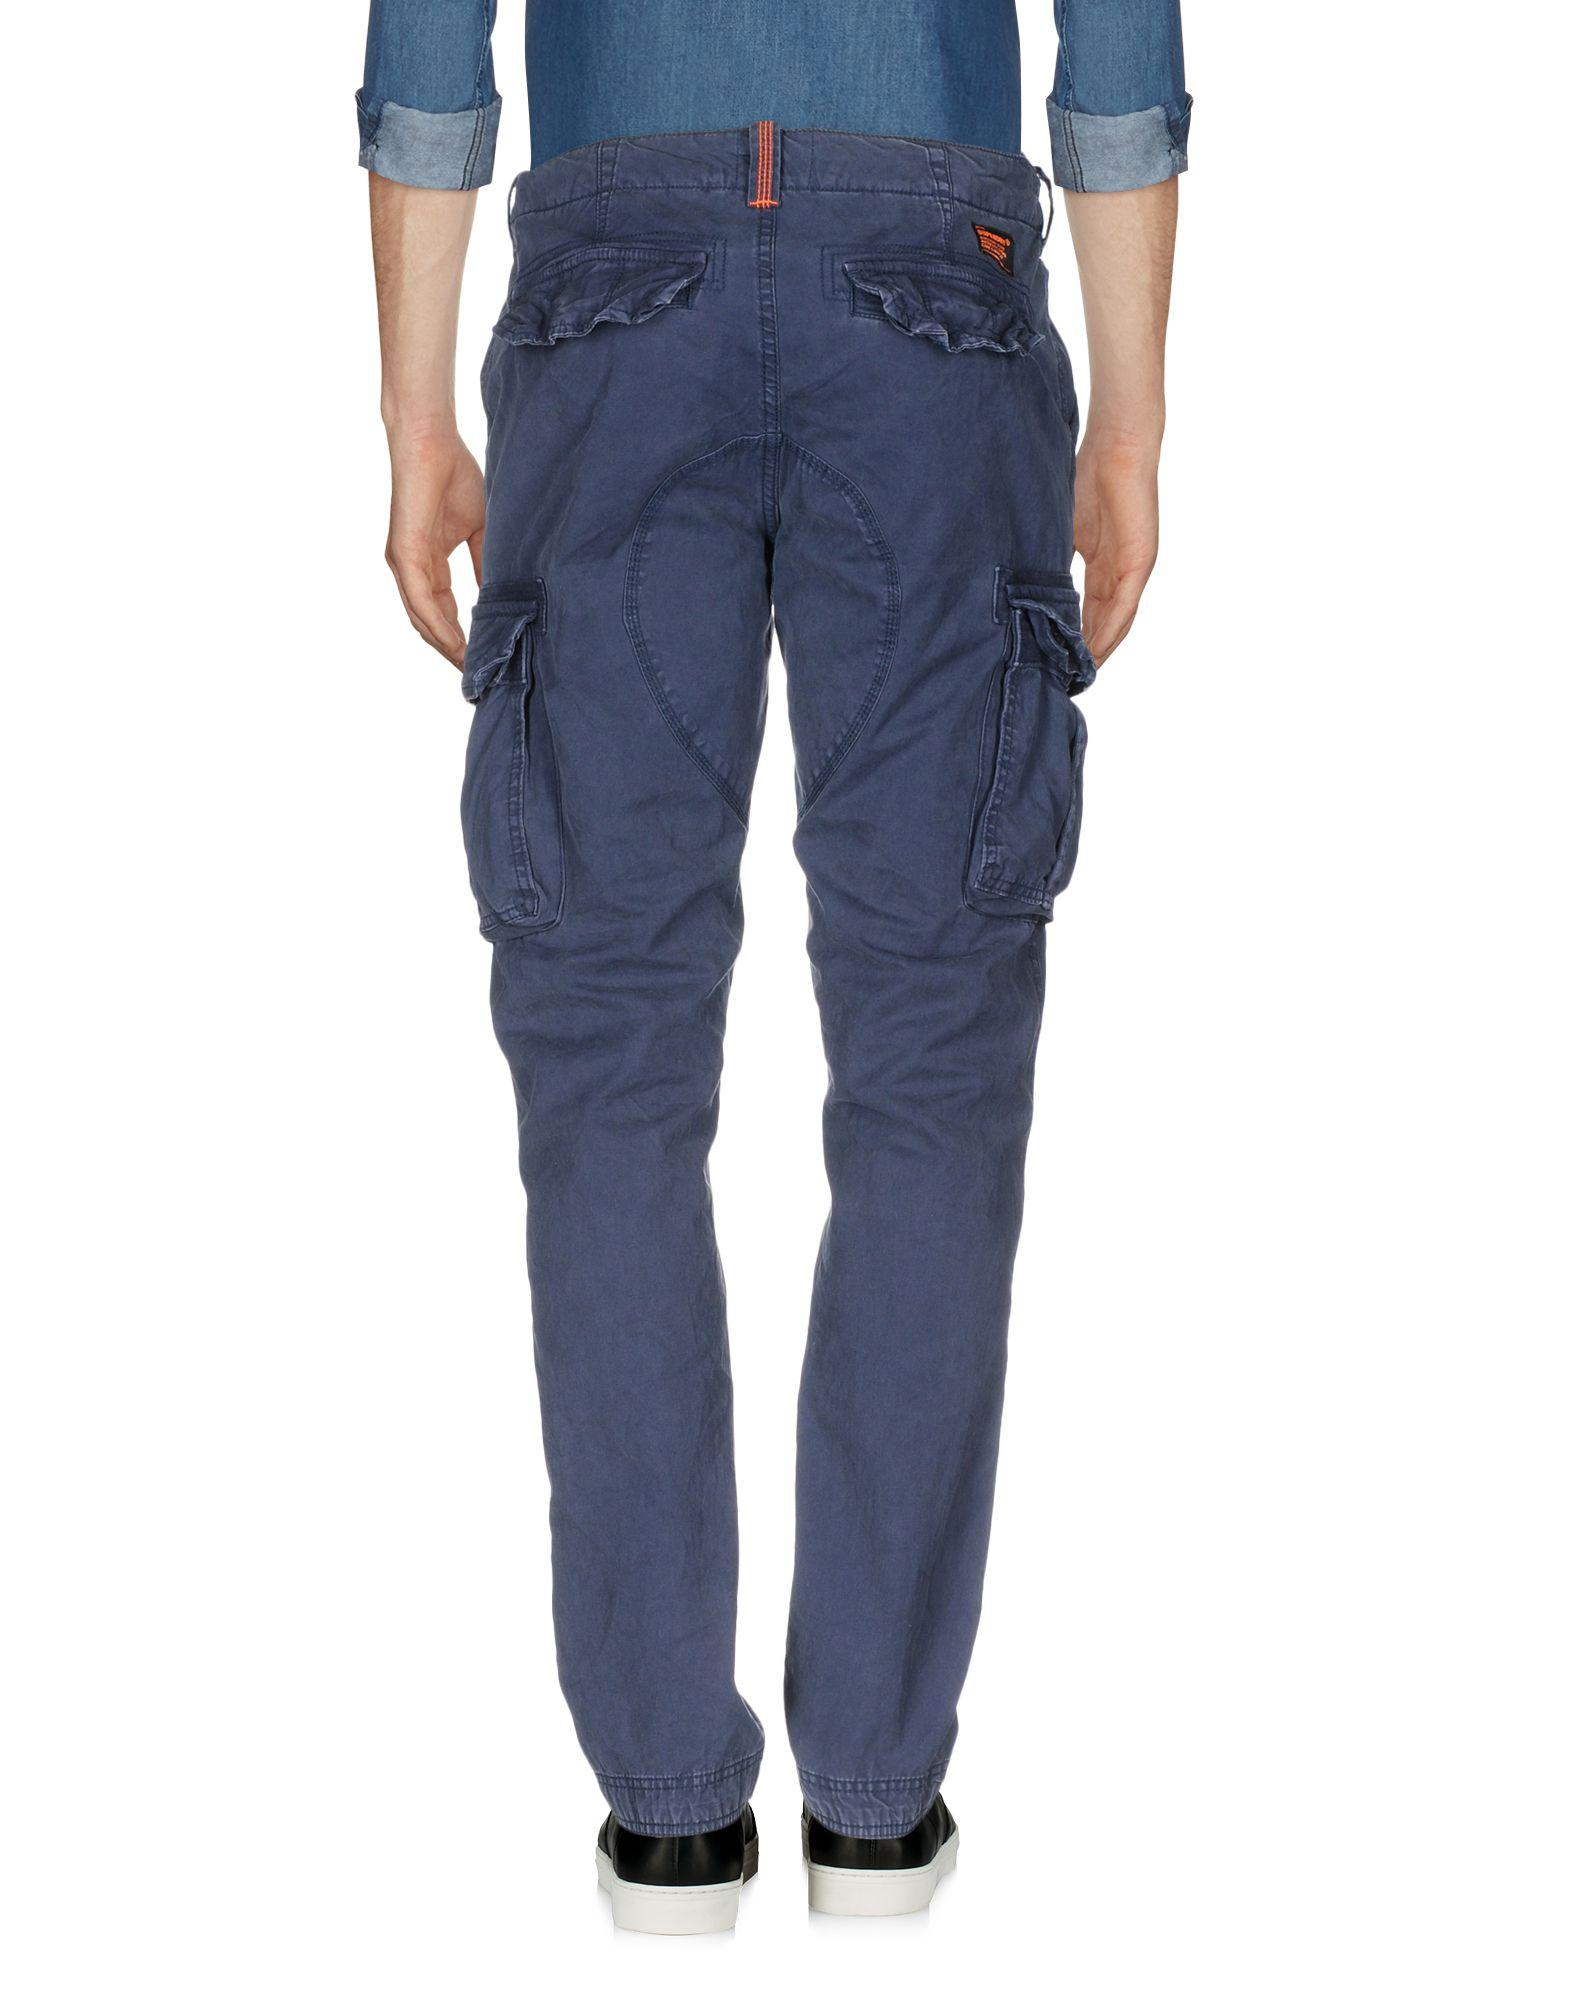 Superdry Cotton Casual Trouser in Dark Blue (Blue) for Men